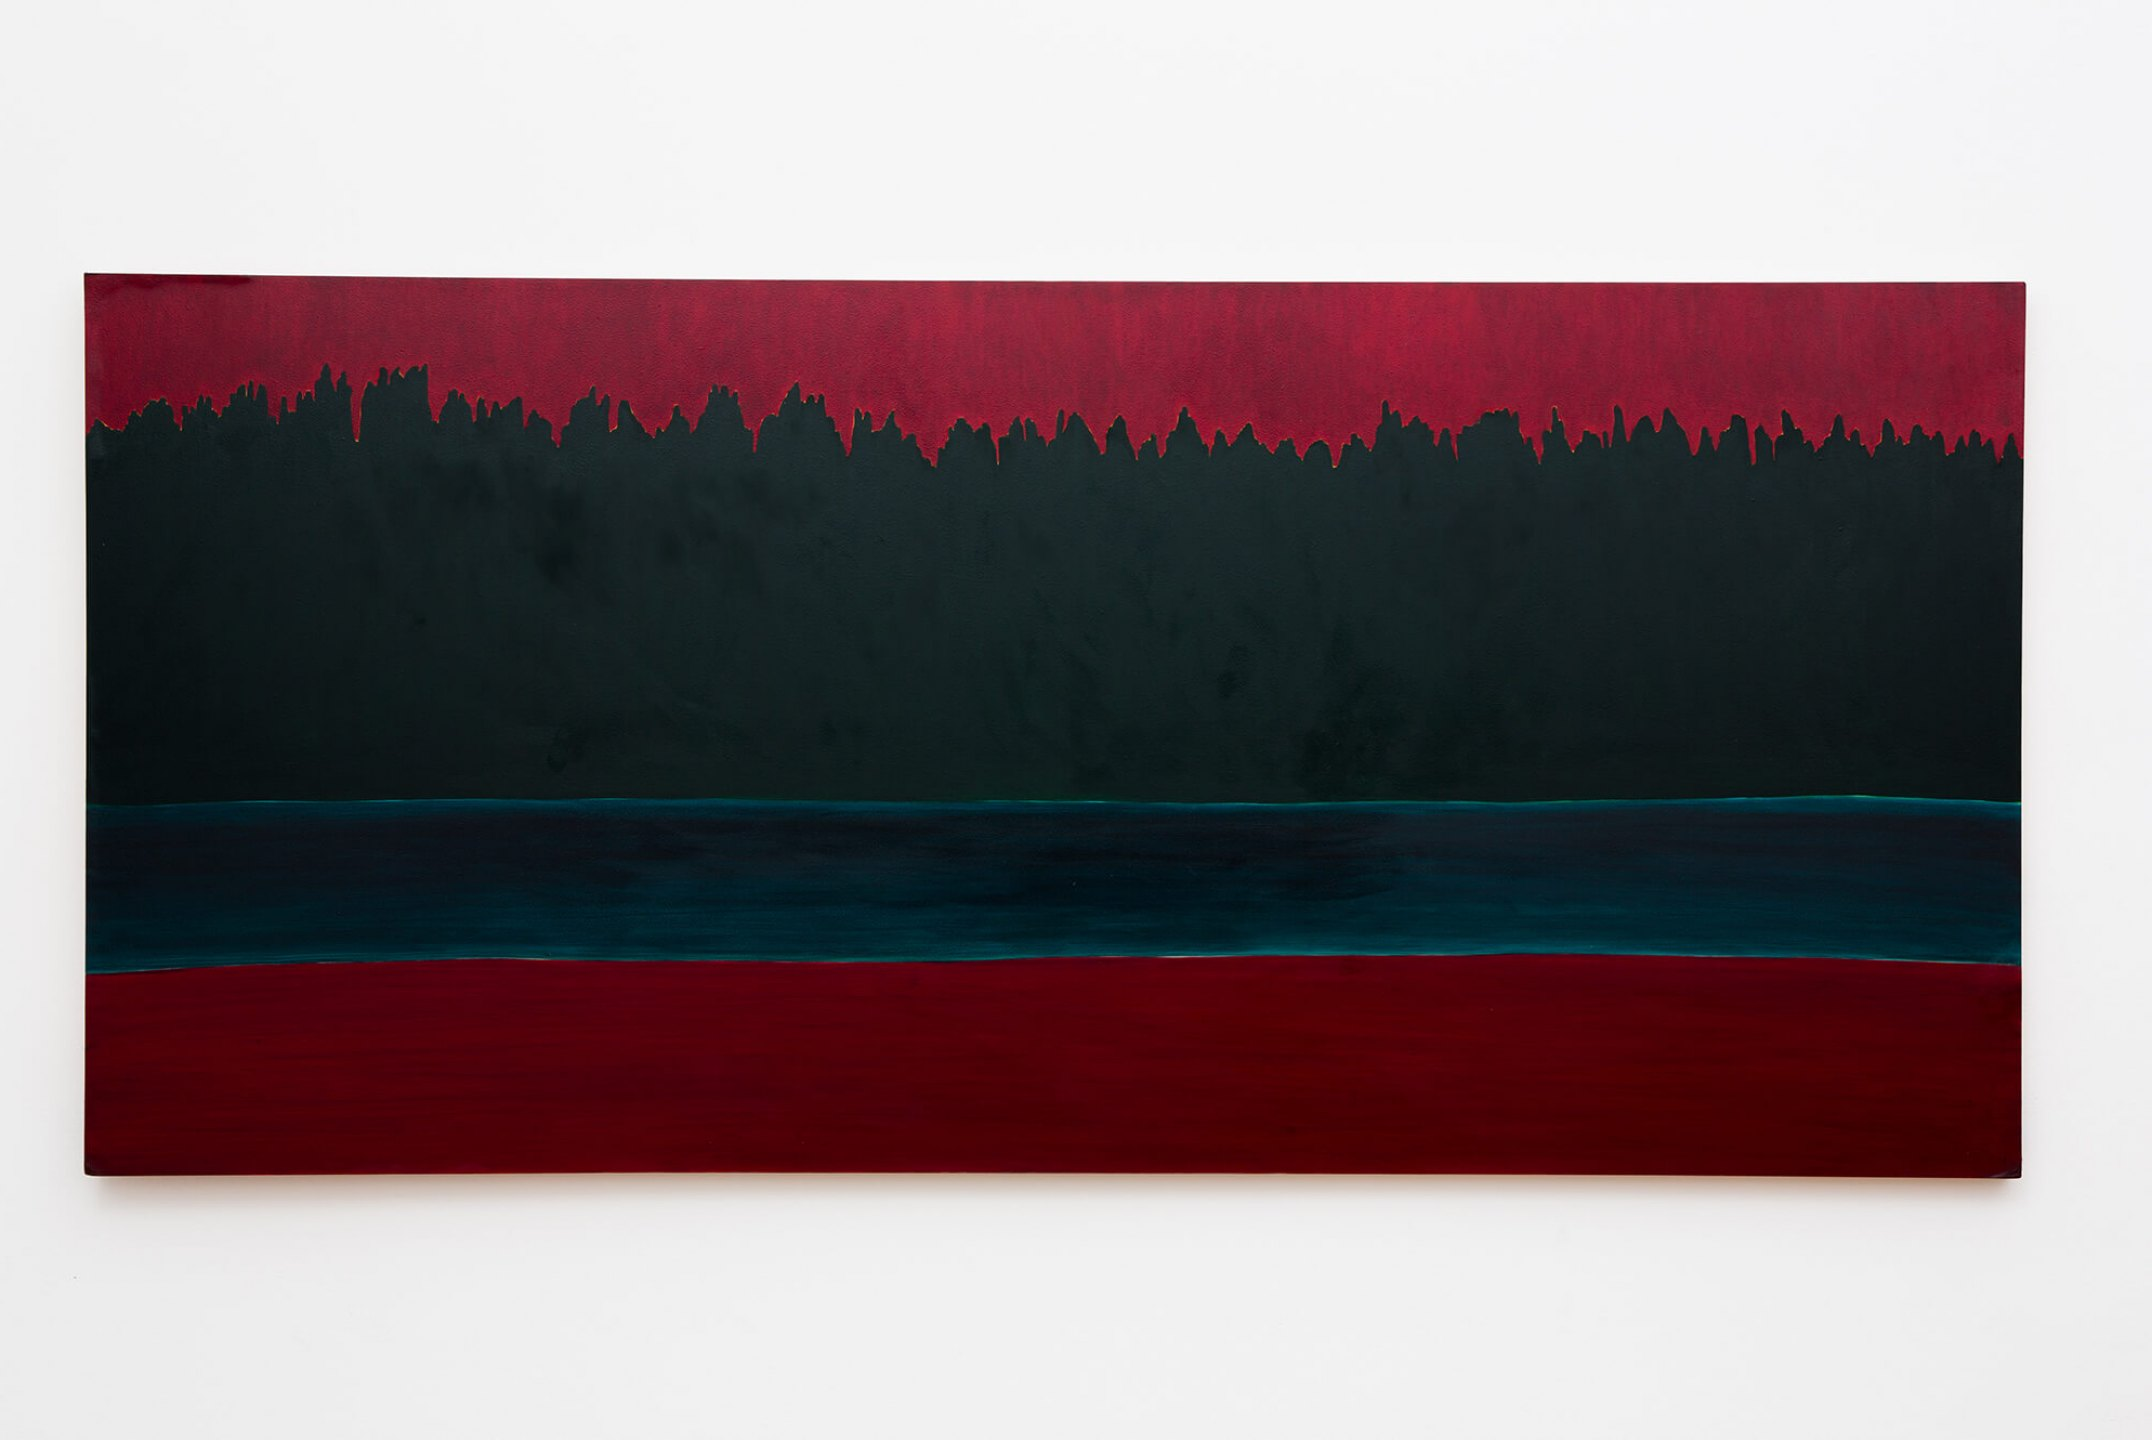 Patricia Leite, <em>Crepúsculo Boreal,</em> 2005-2012, oil on wood, 183 × 85 cm - Mendes Wood DM